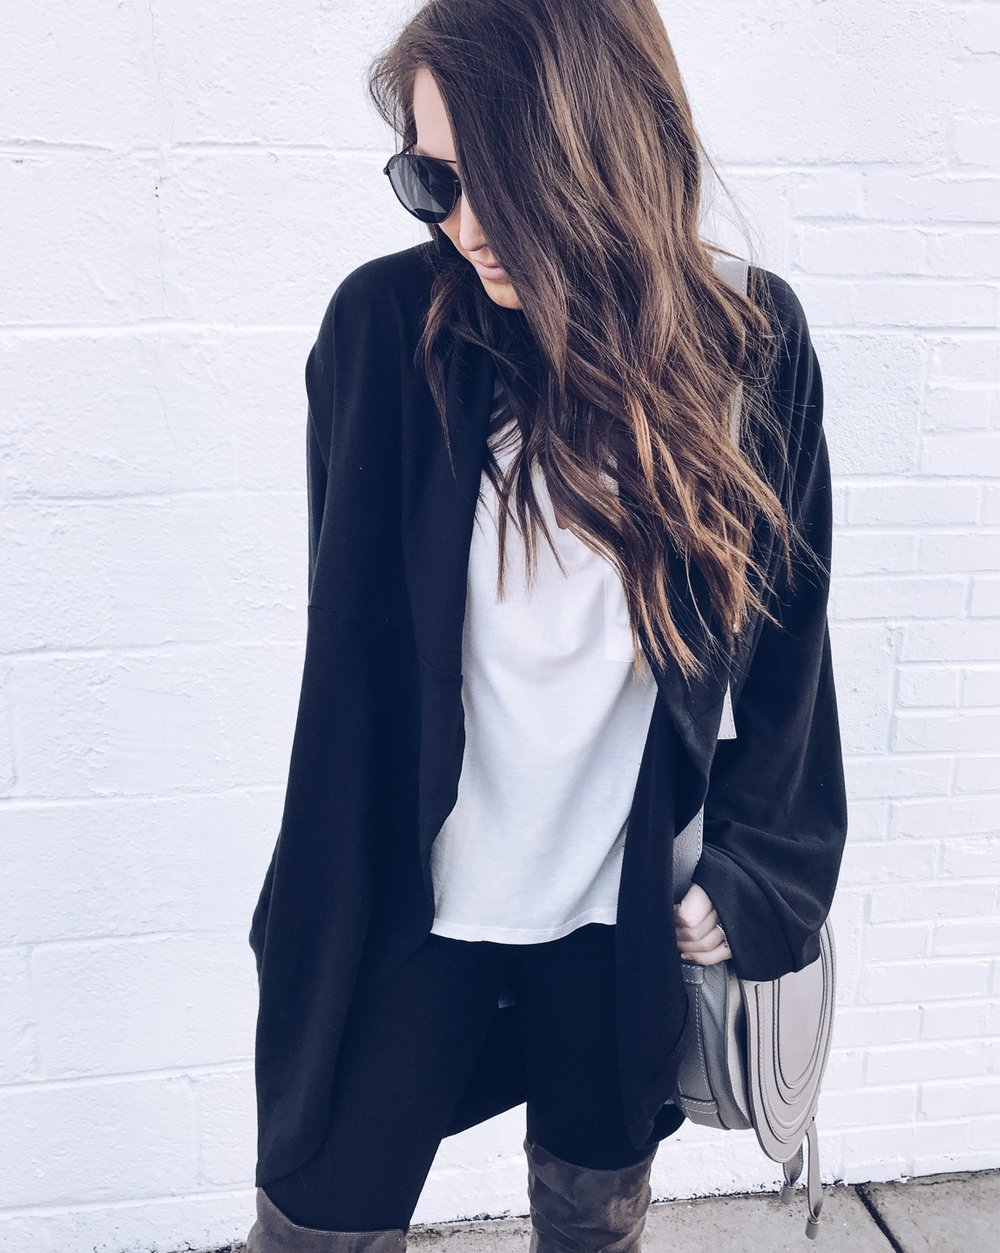 Instagram Round Up | Pine Barren Beauty | outfit of the day, basic tee & black cardigan, oversized cardigan, spring transition outfit idea